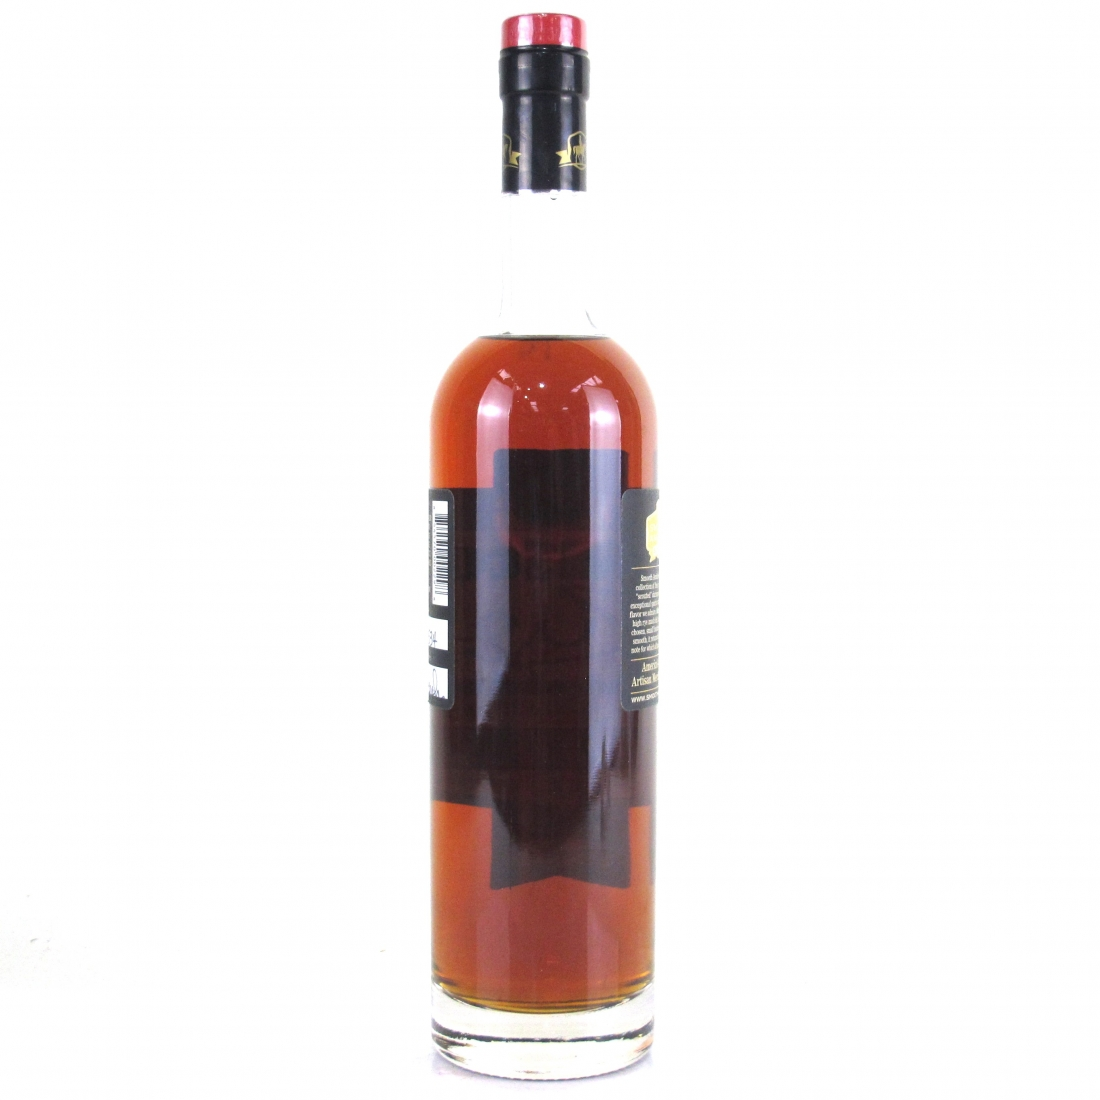 Smooth Ambler Old Scout Rye 9 Year Old Single Barrel Limited Release